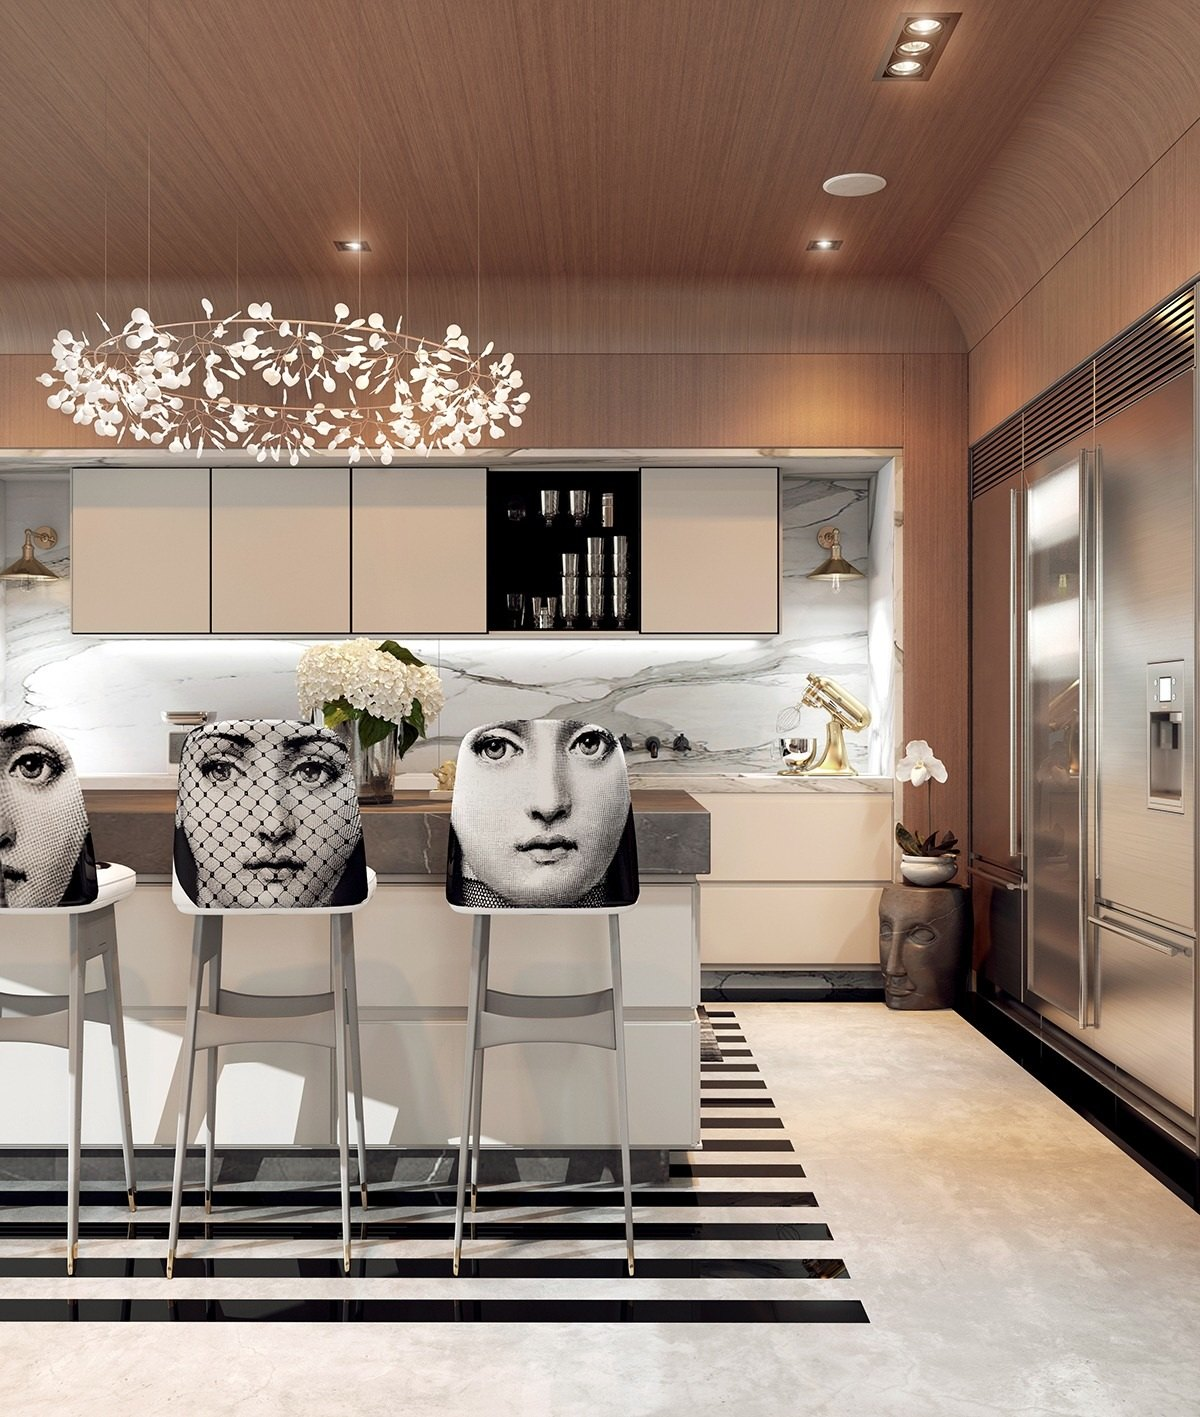 Modern art decor ideas